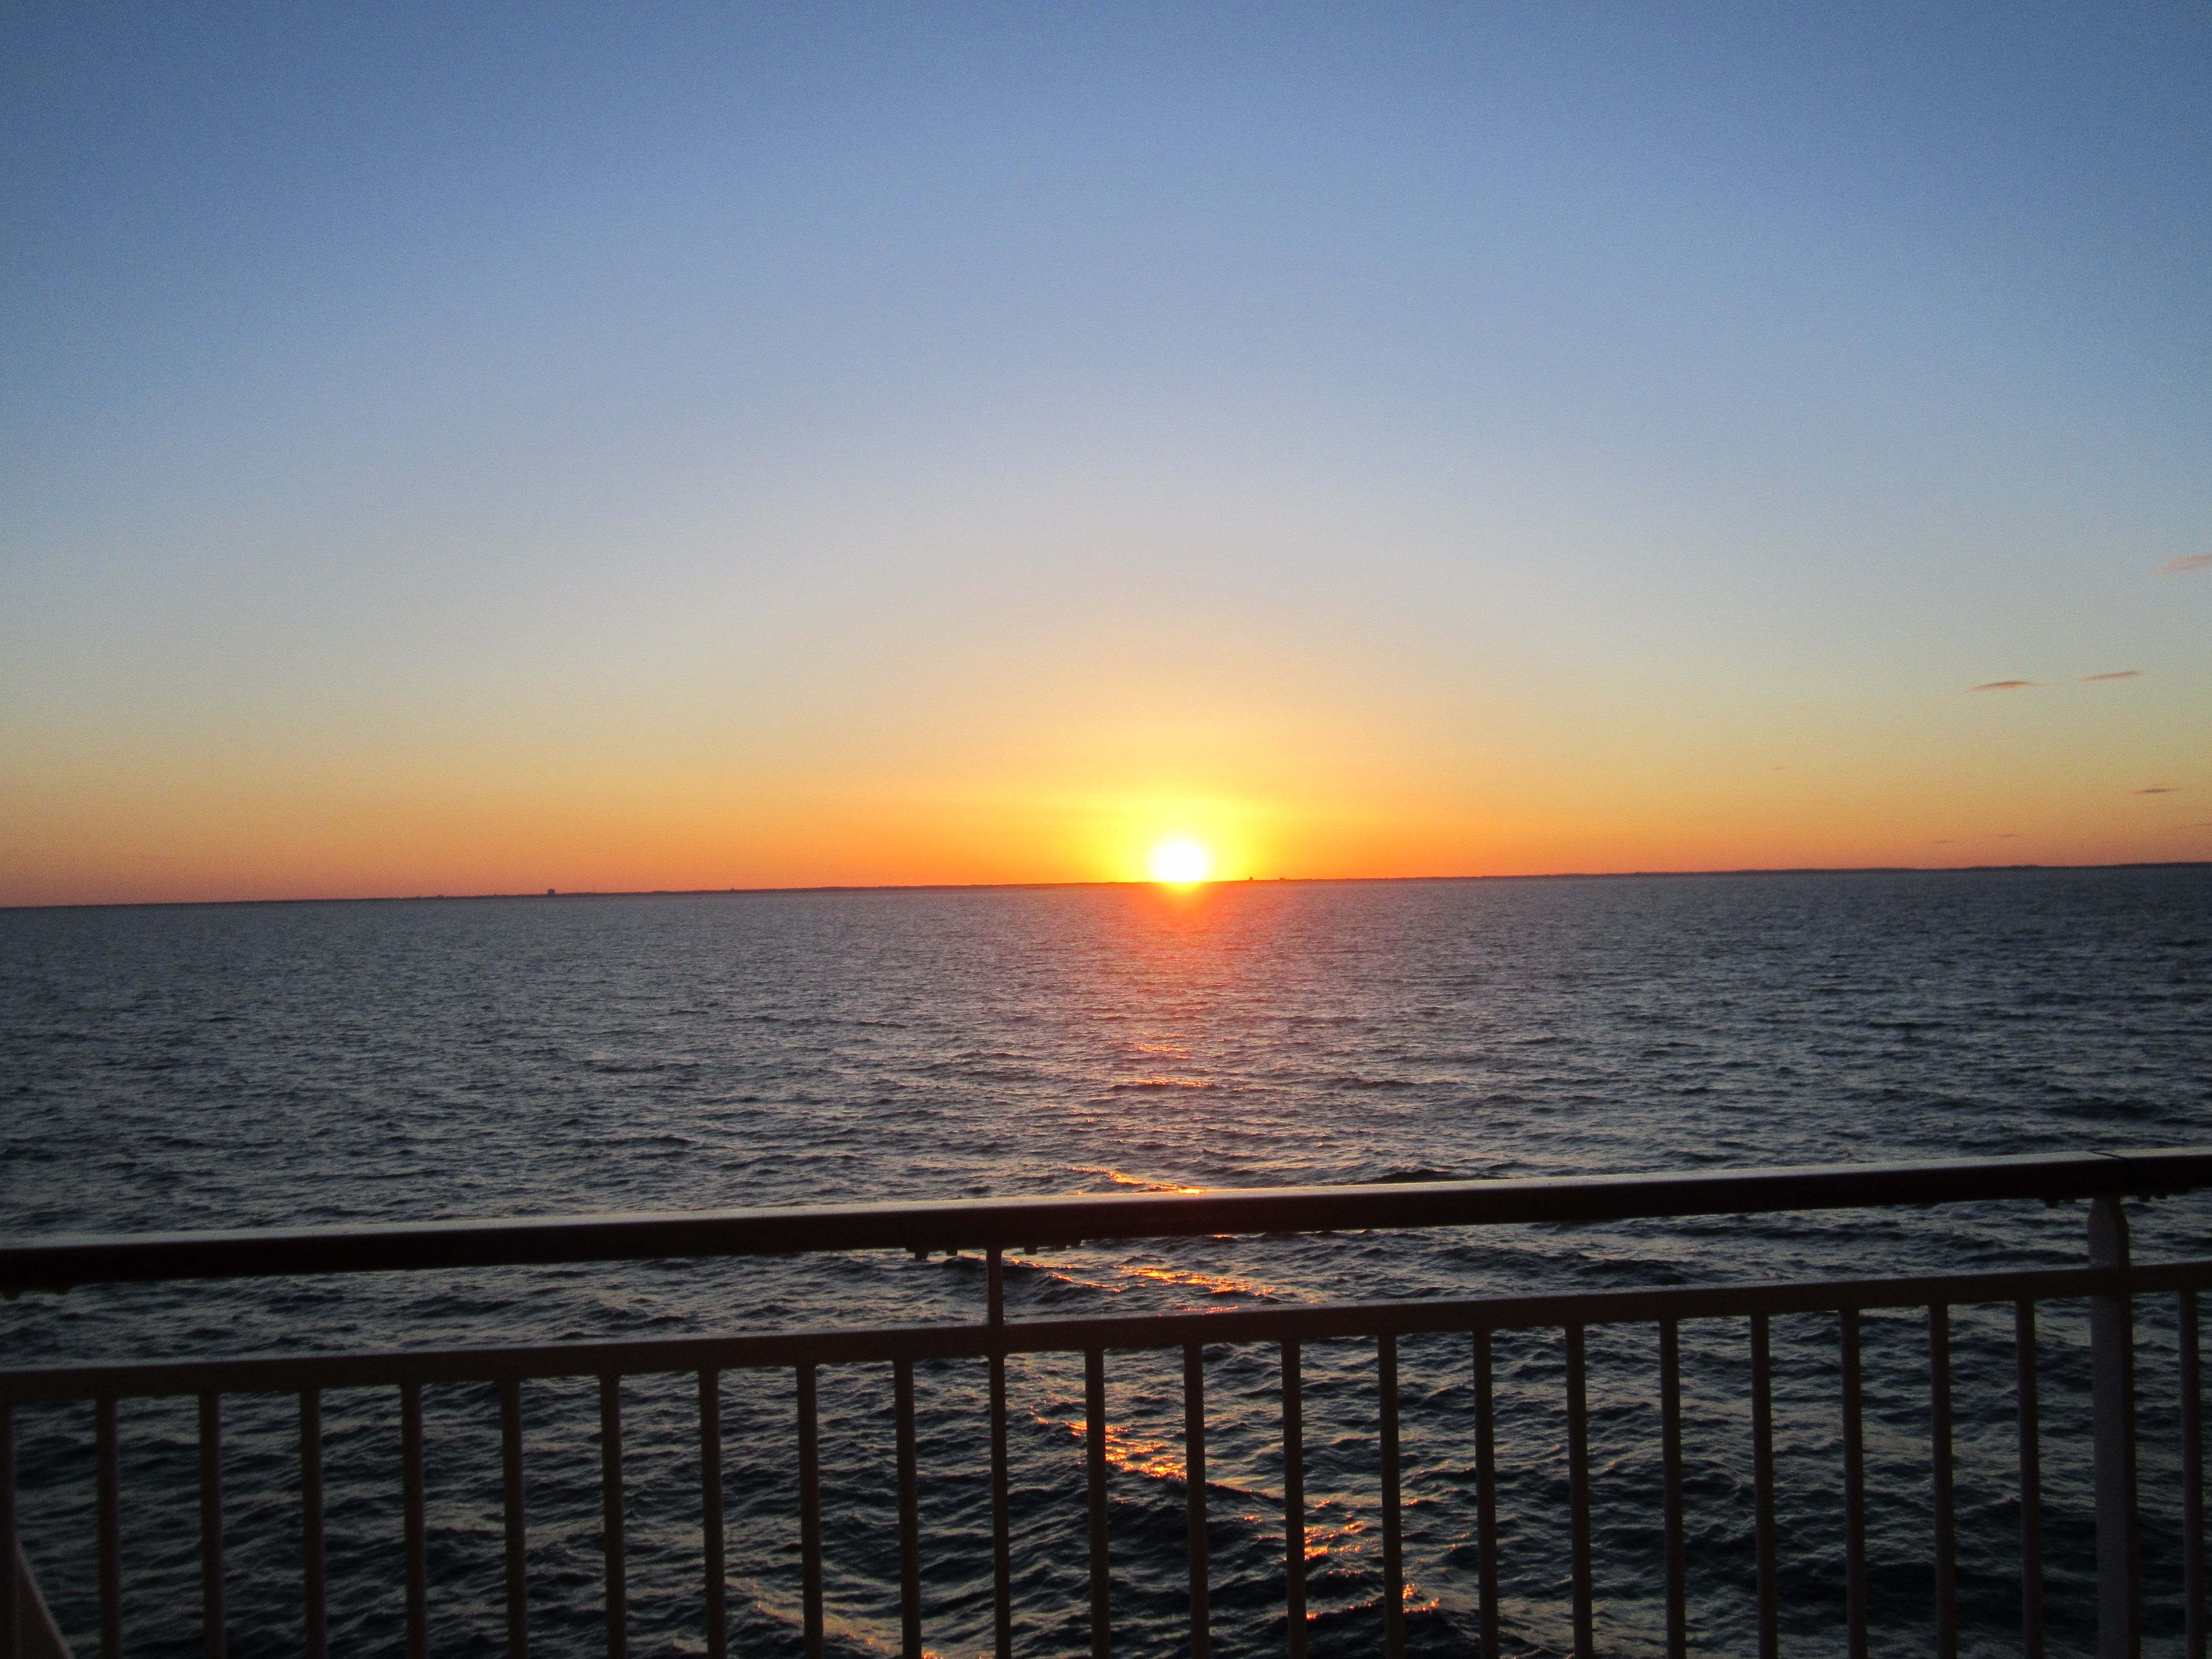 Sunset on the ship deck